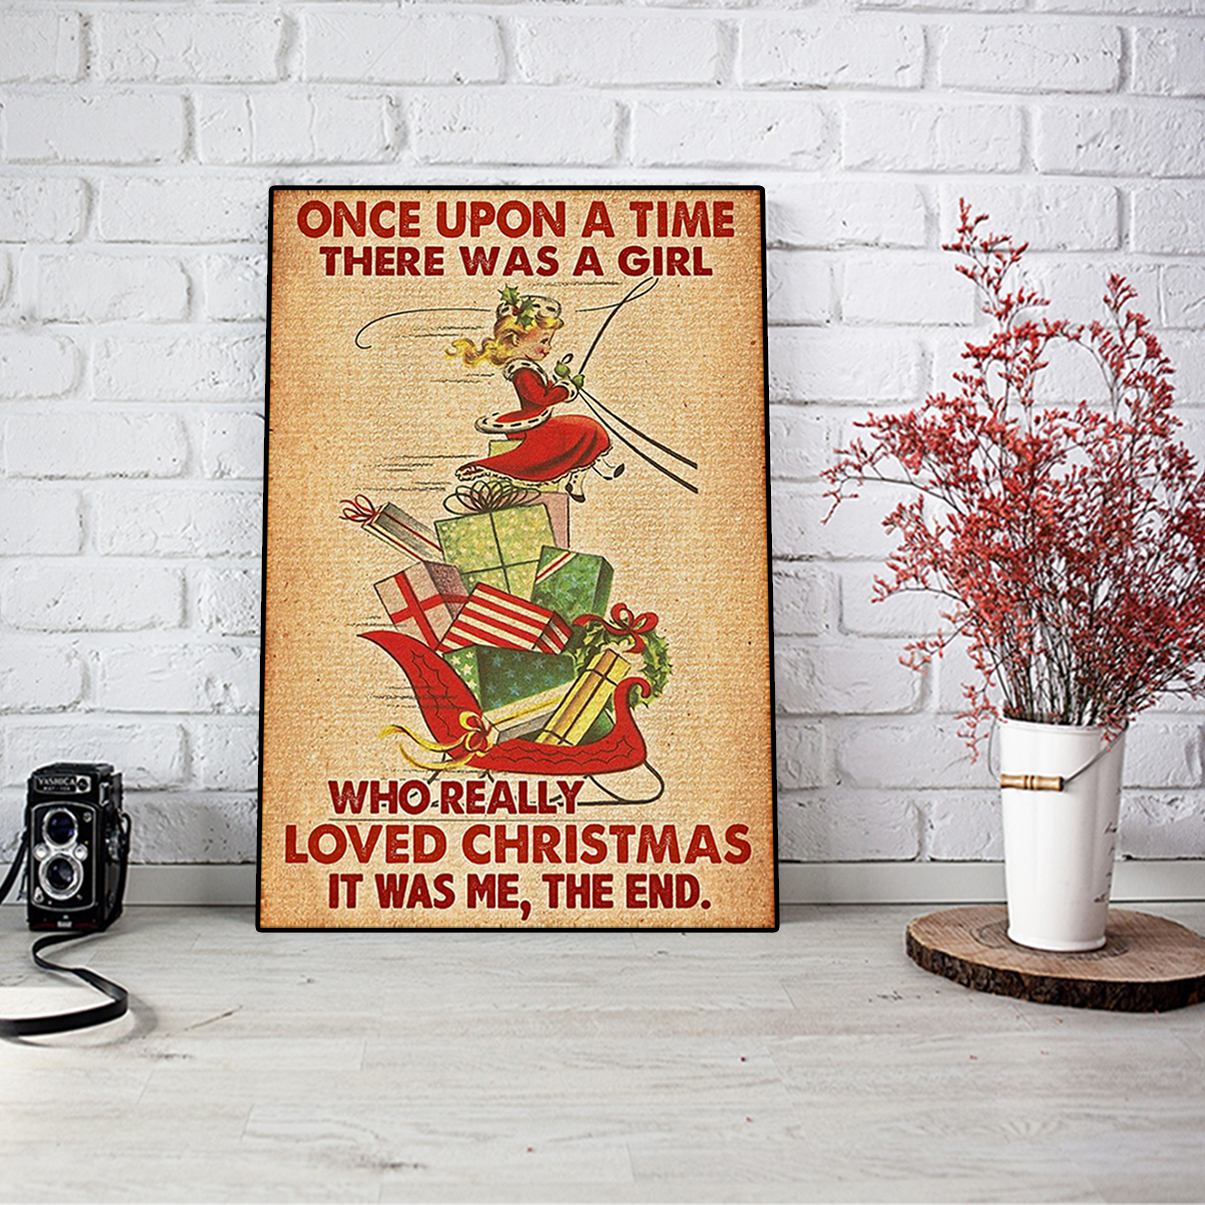 Once upon a time there was a girl who really loved christmas it was me the end poster A2